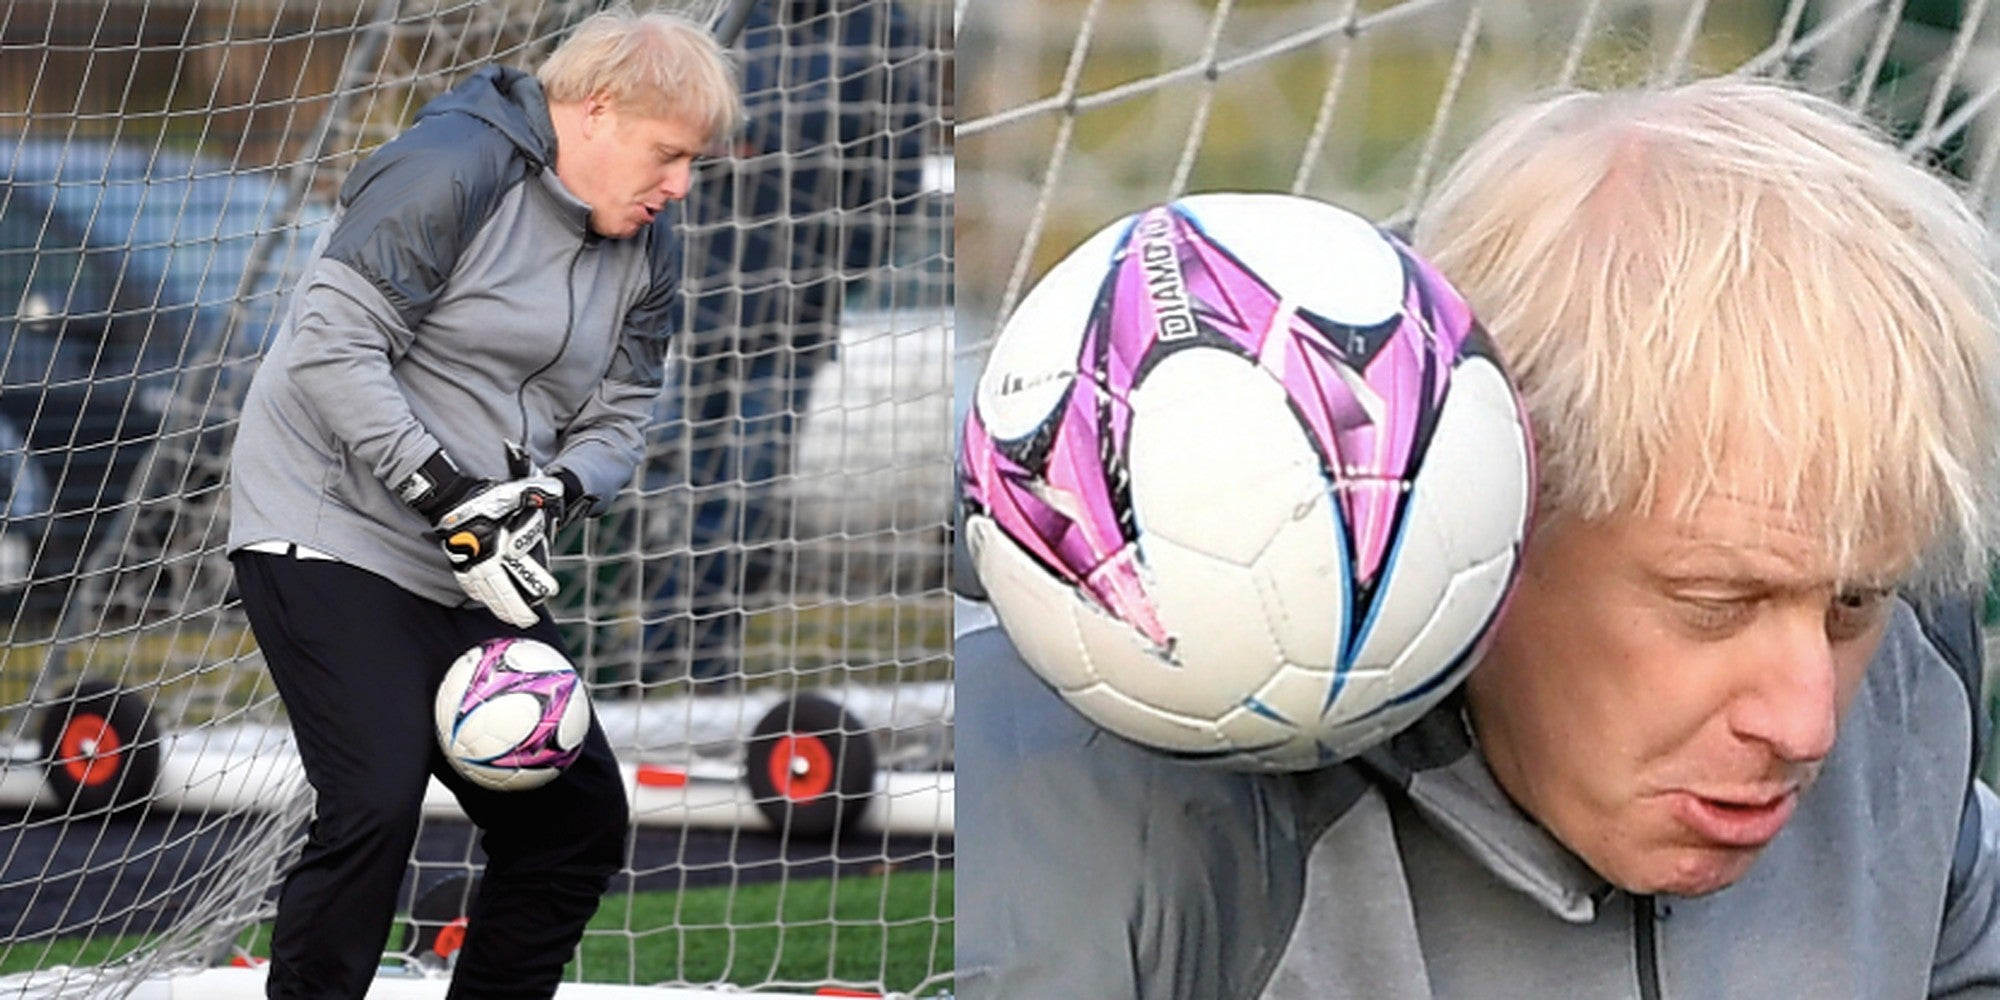 Boris Johnson went in goal at a children's football match and it wen…